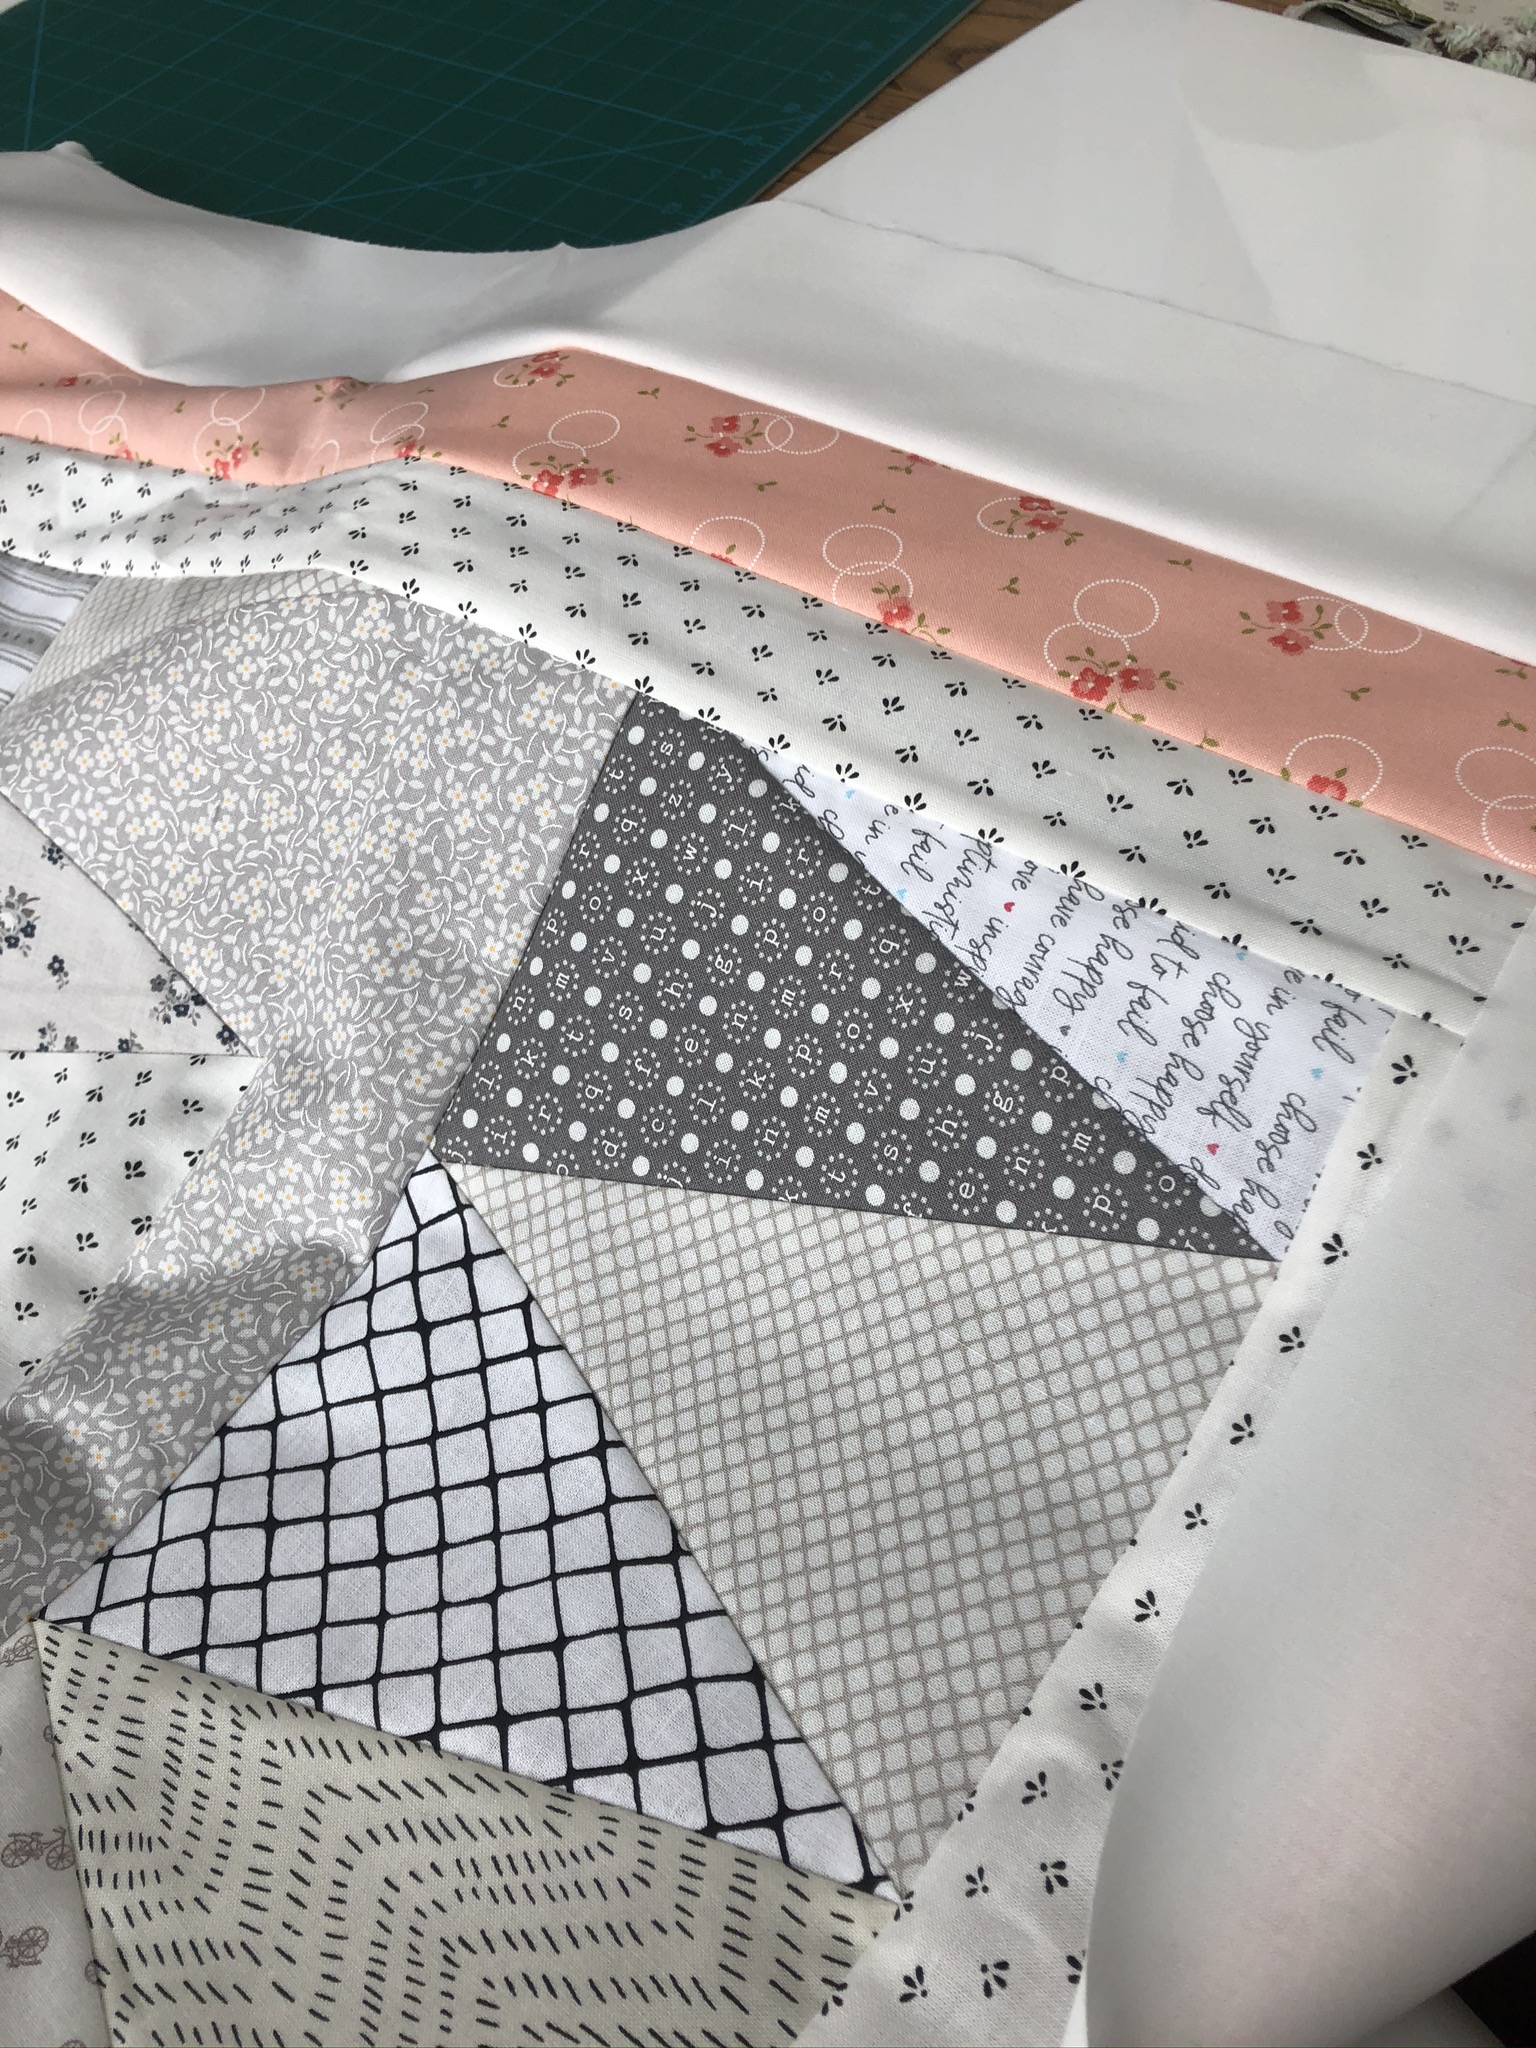 close up of low volume equilateral triangle quilt pieced with sashing and a triple border of white and pink and grey printed fabrics